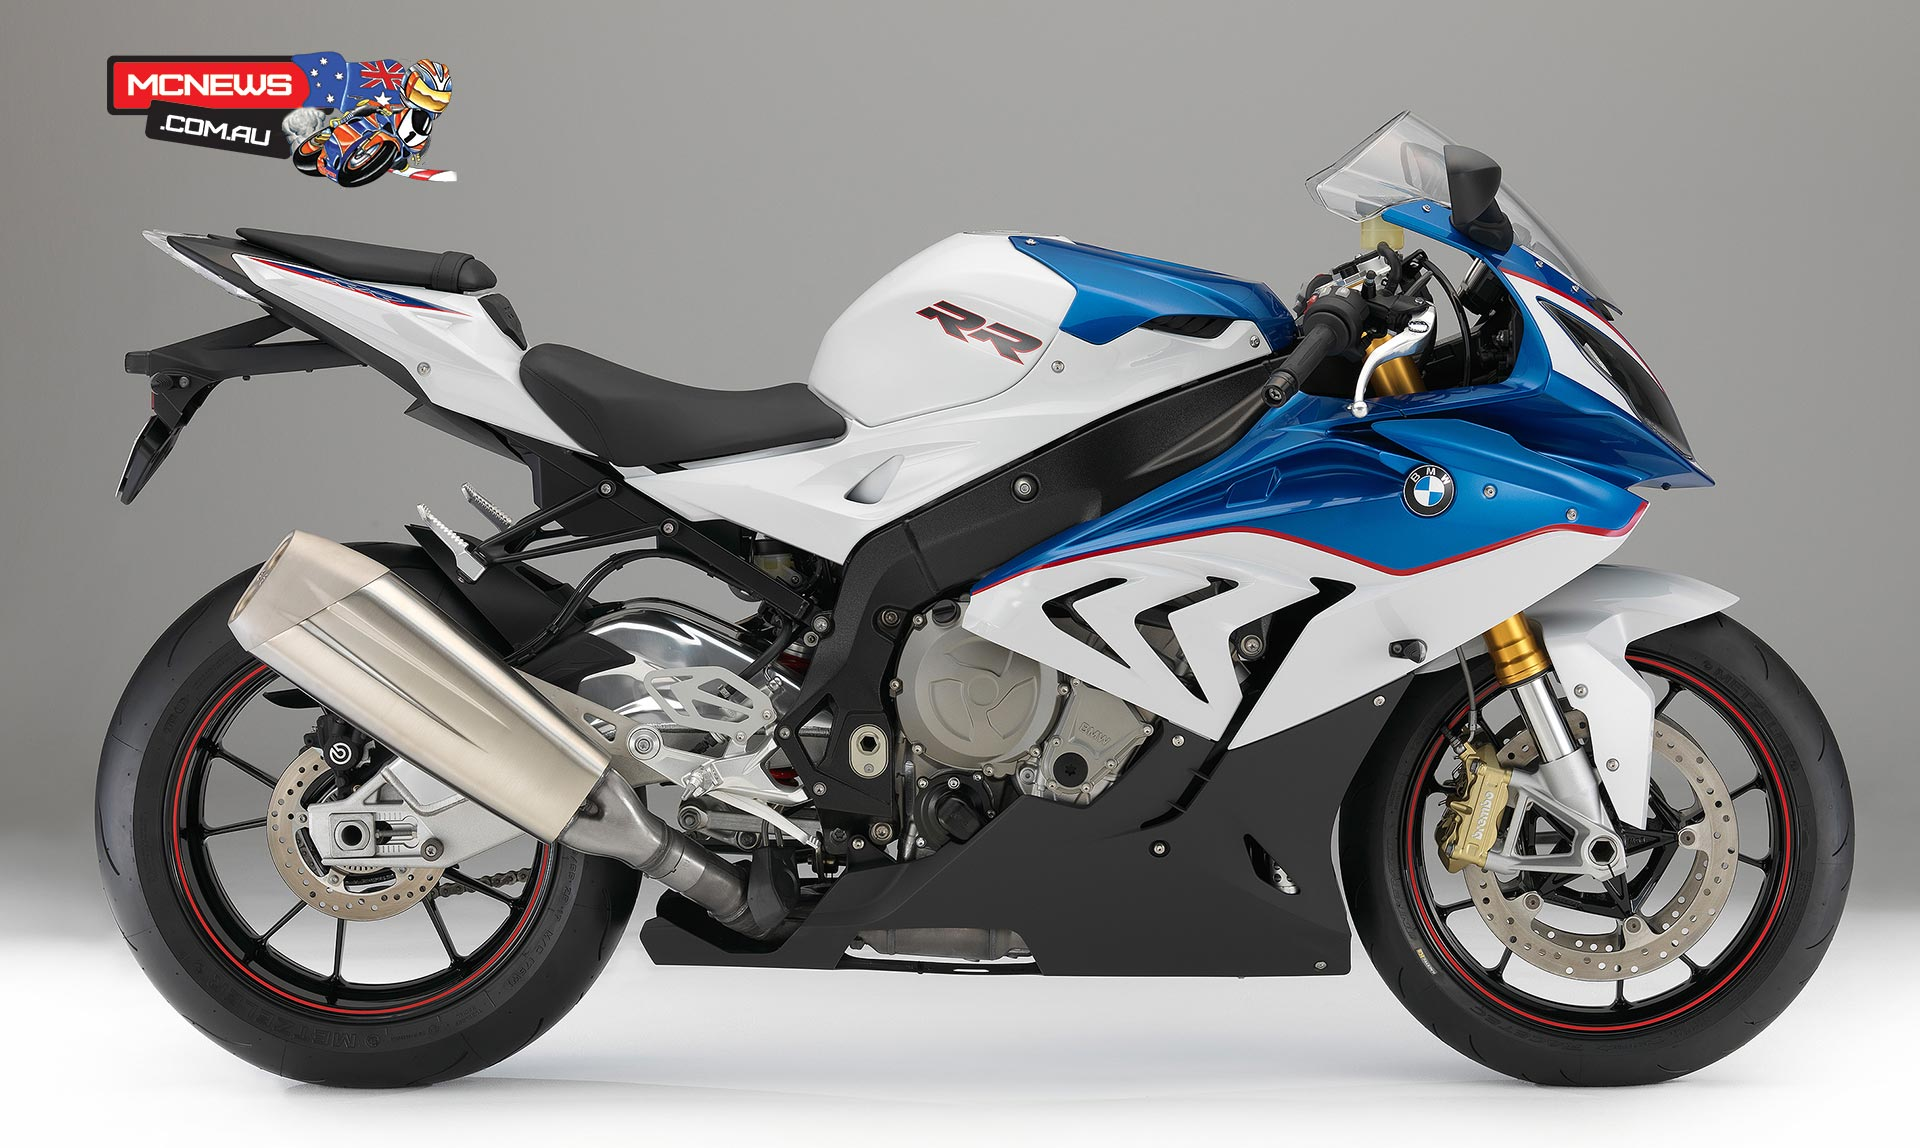 Bmw Rr R 1200 And F 800 Pricing The Top Line Of Bikes S 1000 2015